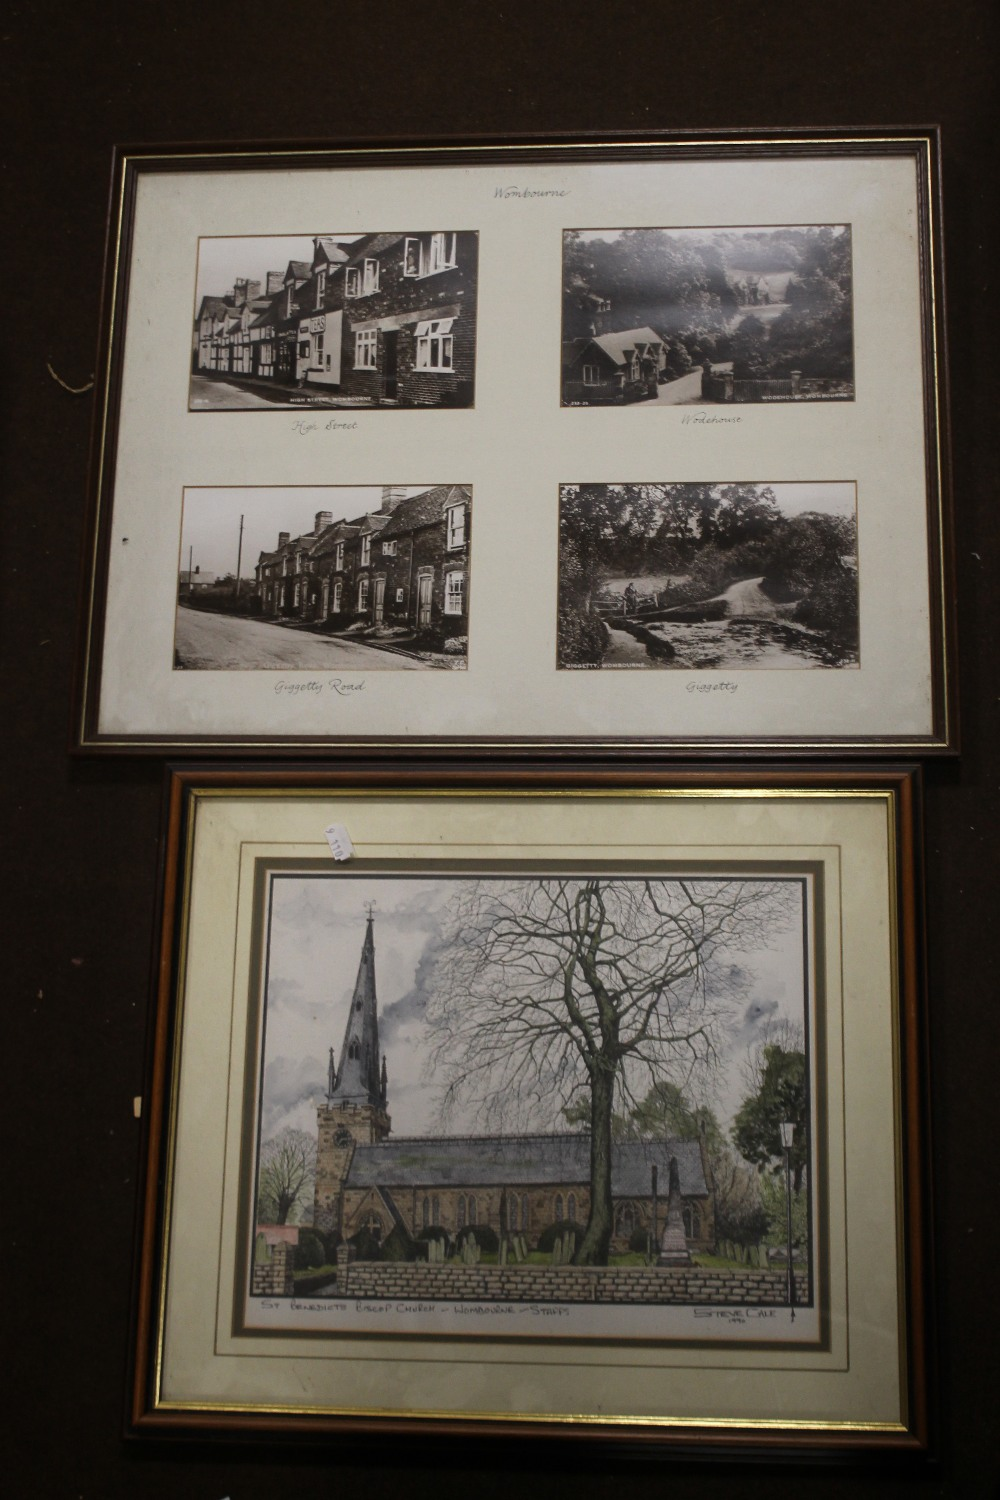 A FRAME OF FOUR PHOTOGRAPHS OF WOMBOURNE, together with a print of Wombourne